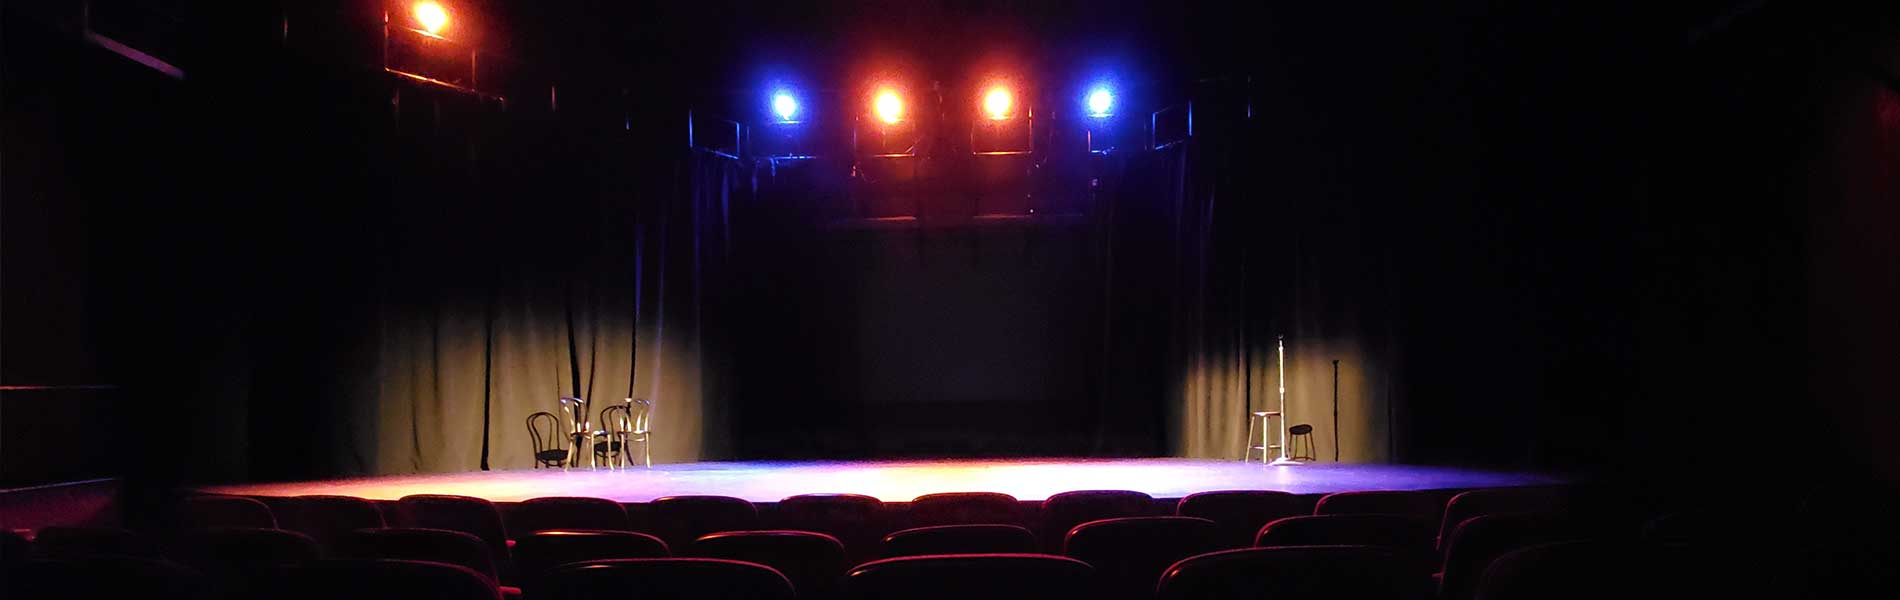 The Crescent Theatre is Clayton State University's theatrical stage featuring productions by students in the Theatre program. This beautifully renovated 149 seat theatre serves as a performance and classroom space. banner image